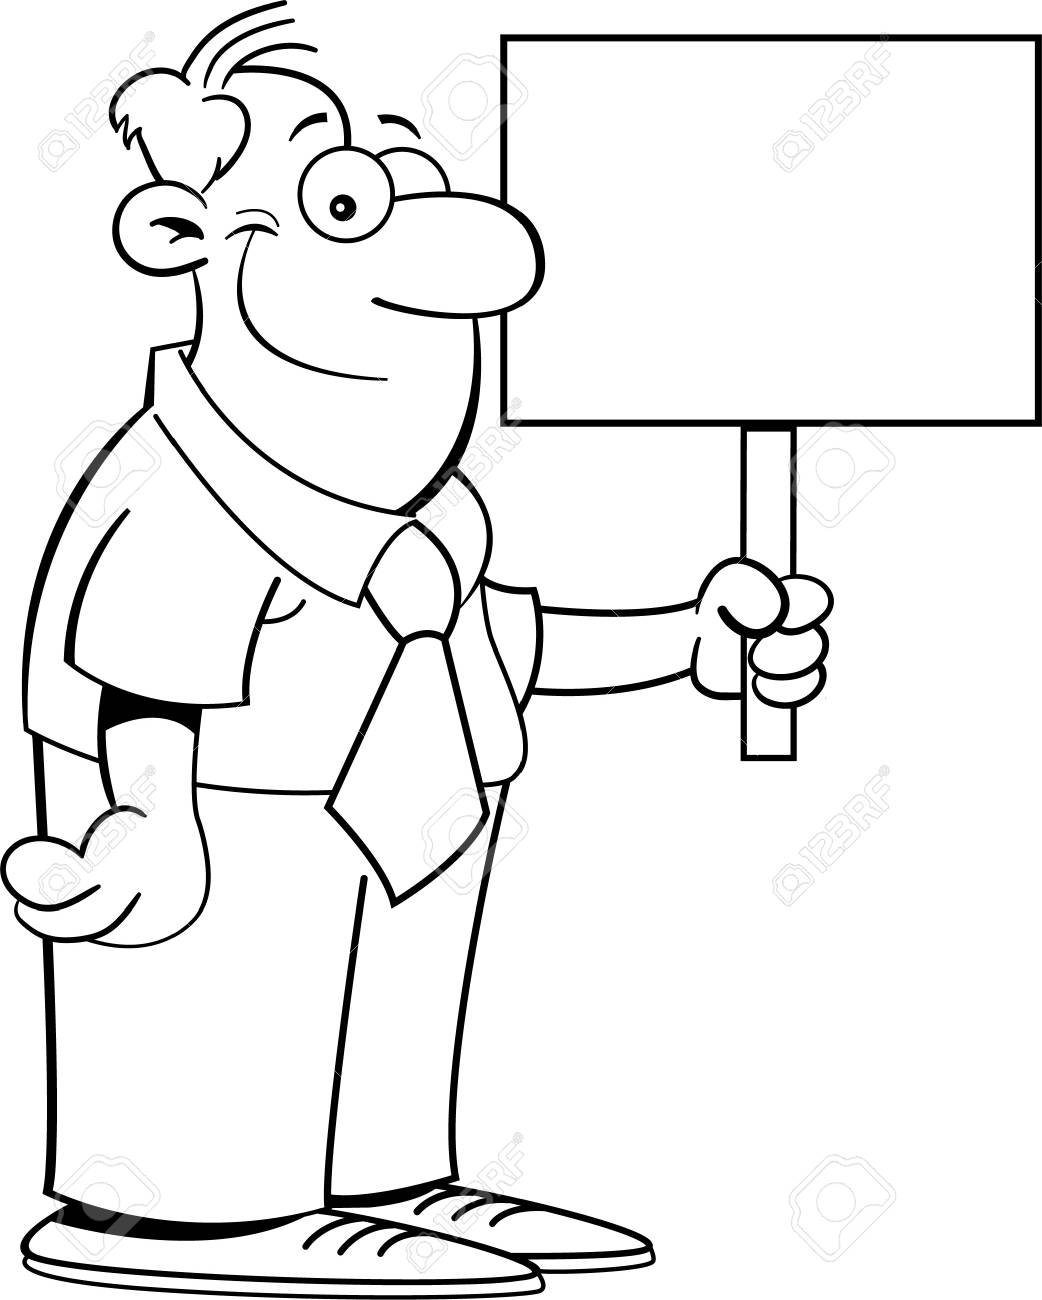 Black and white illustration of a businessman holding a sign Stock Vector - 15041814